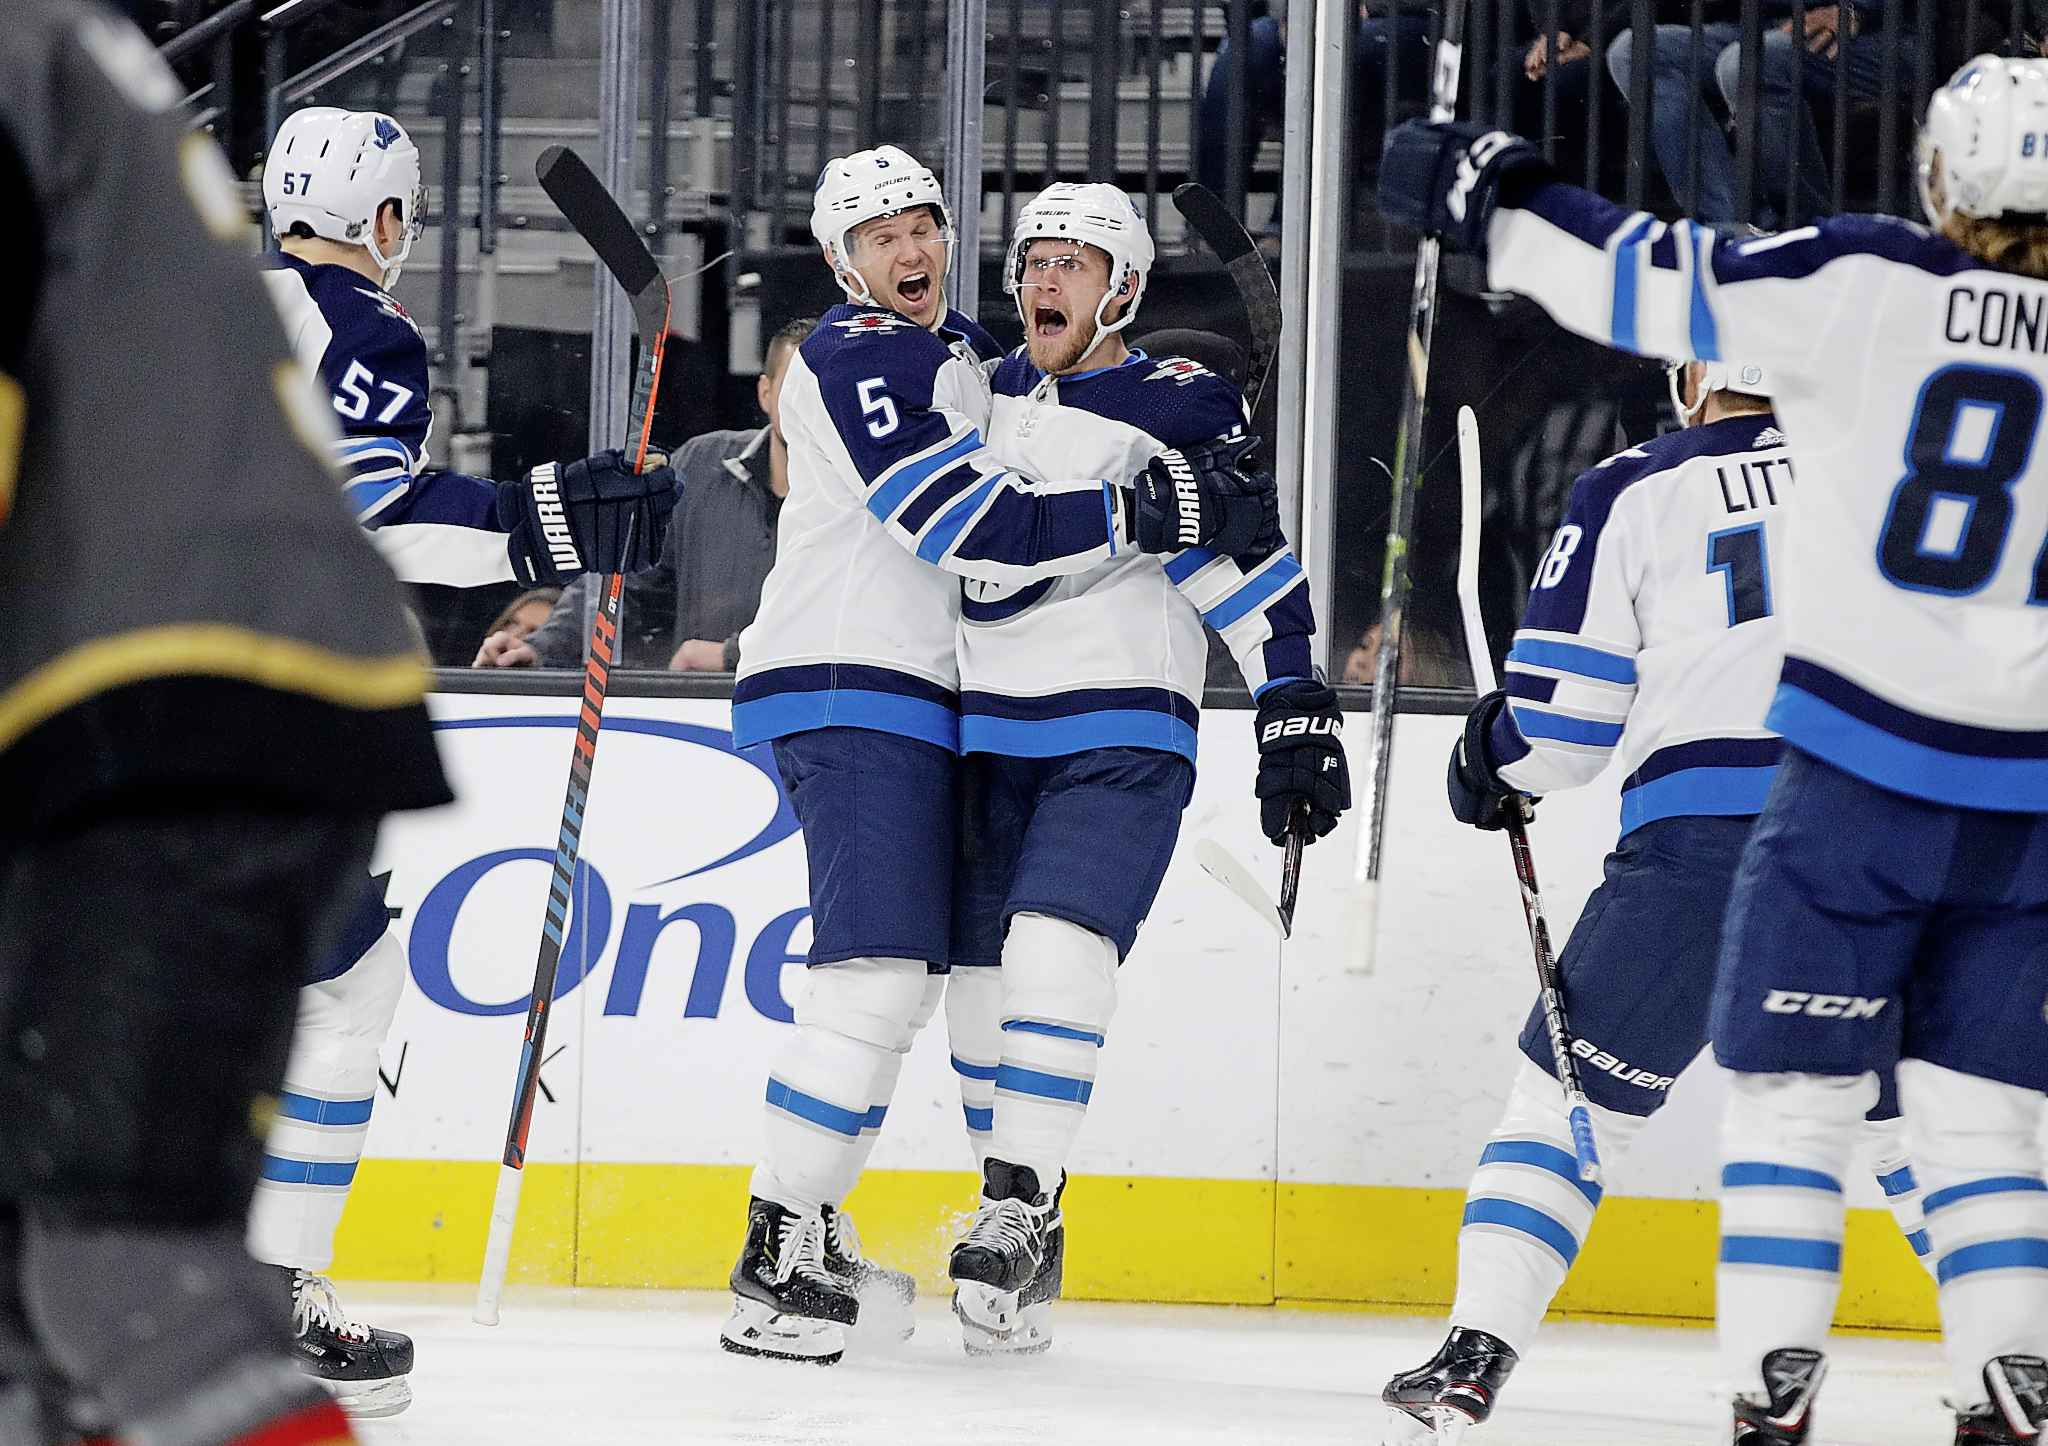 Winnipeg Jets defenceman Dmitry Kulikov celebrates after left wing Nikolaj Ehlers scored against the Vegas Golden Knights during the first period Friday.